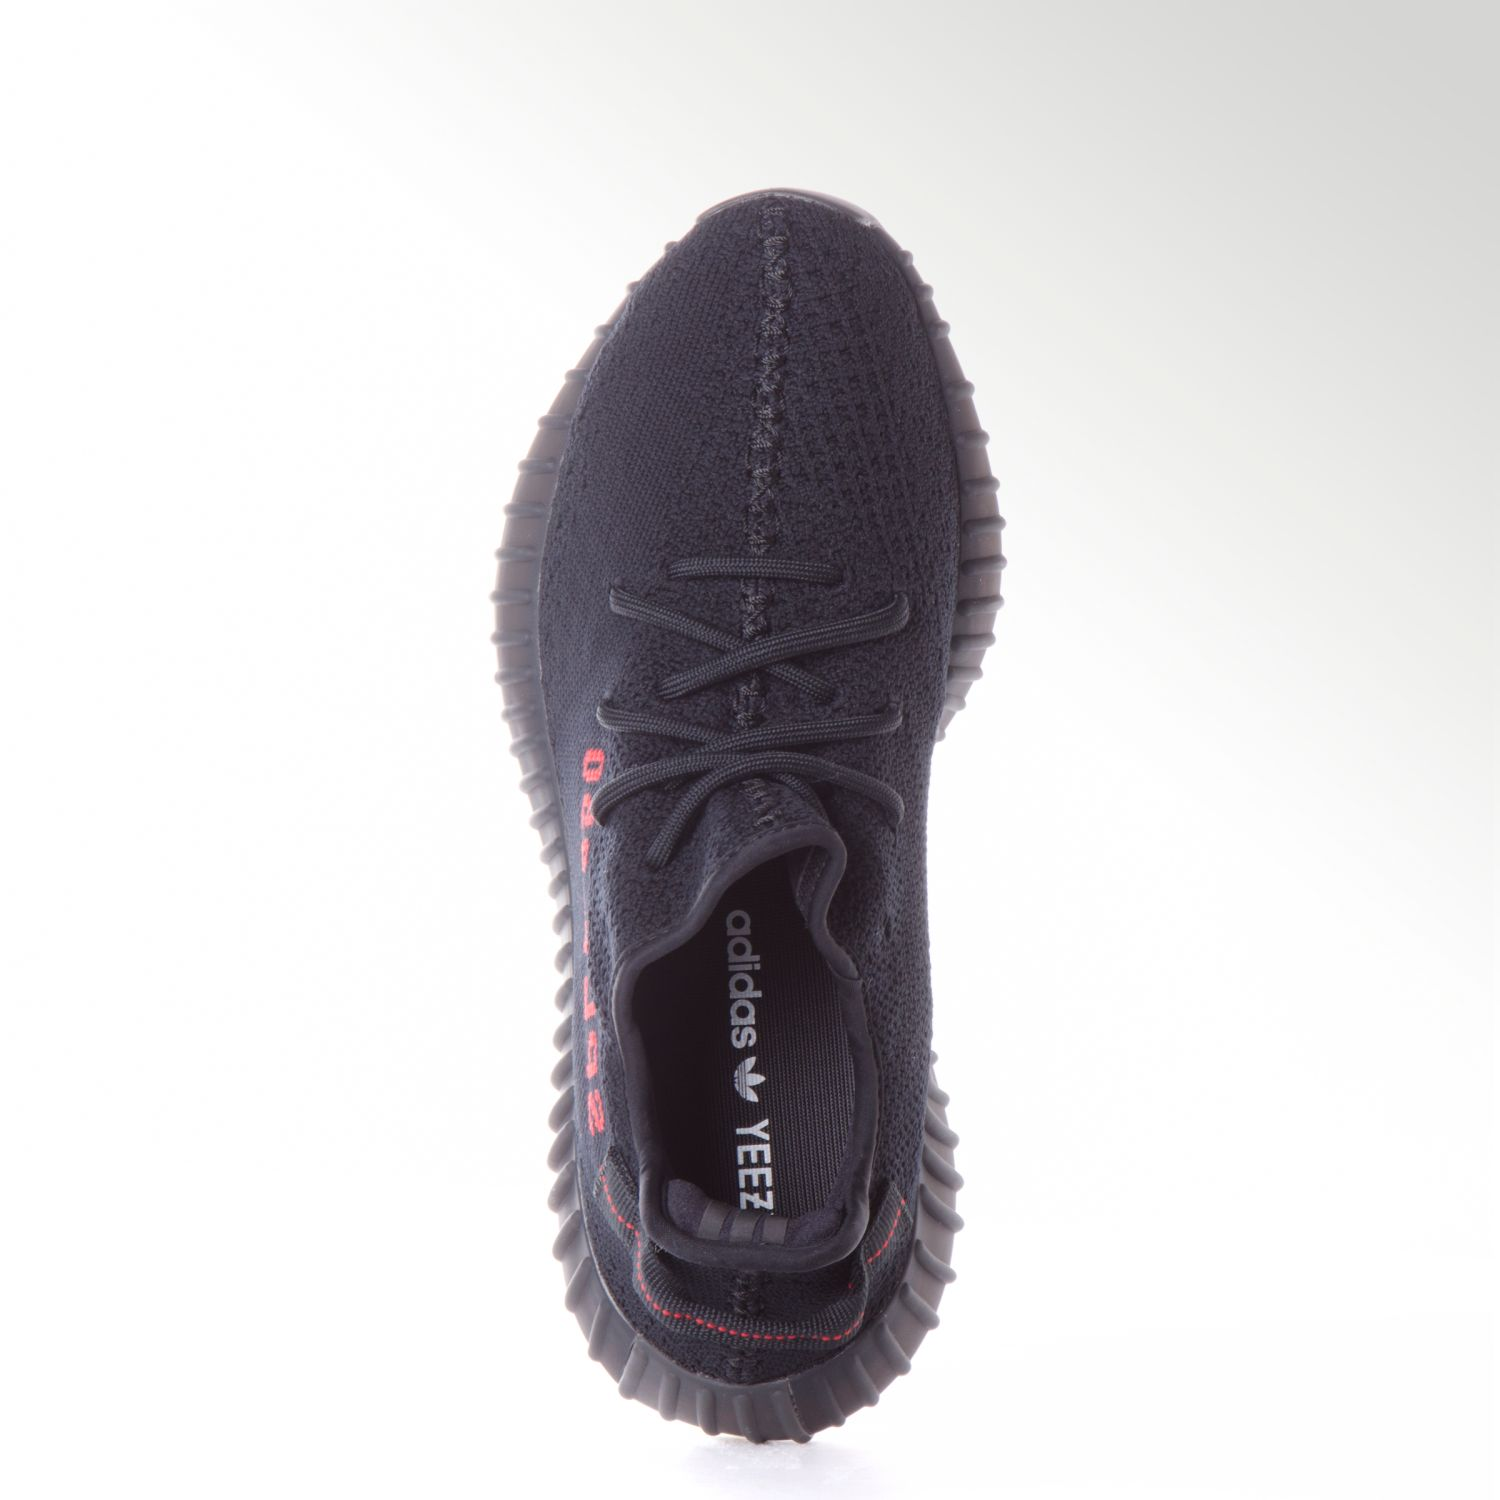 Yeezy Boost 350 V2 Black Red [2]